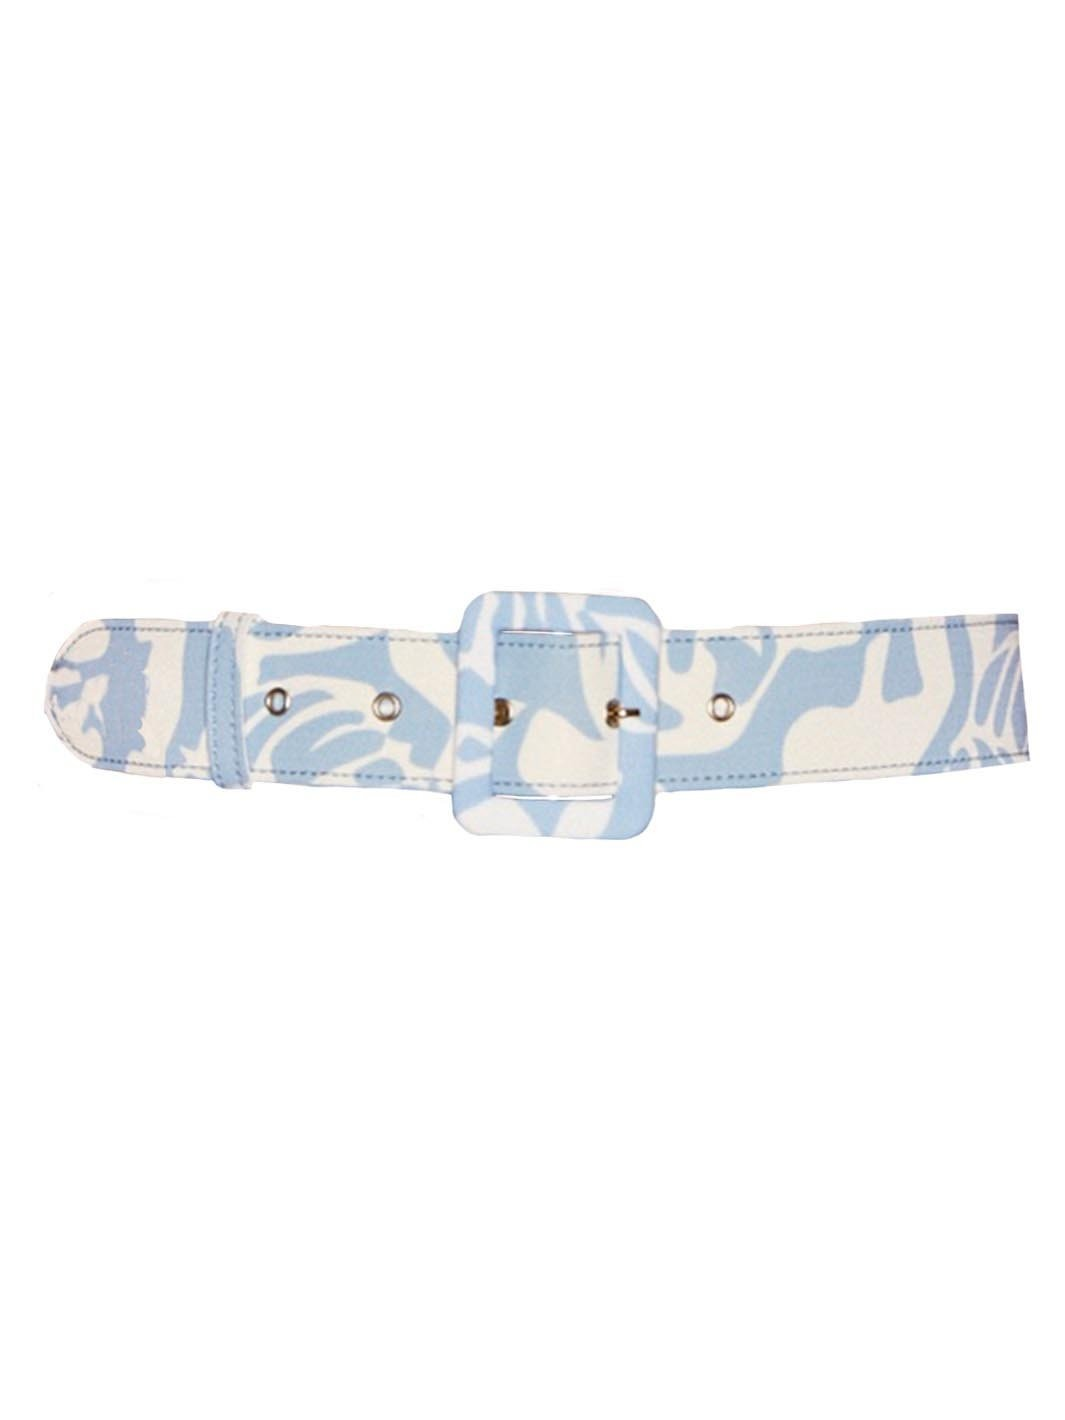 Floral Print Belt - The Bobby Boga